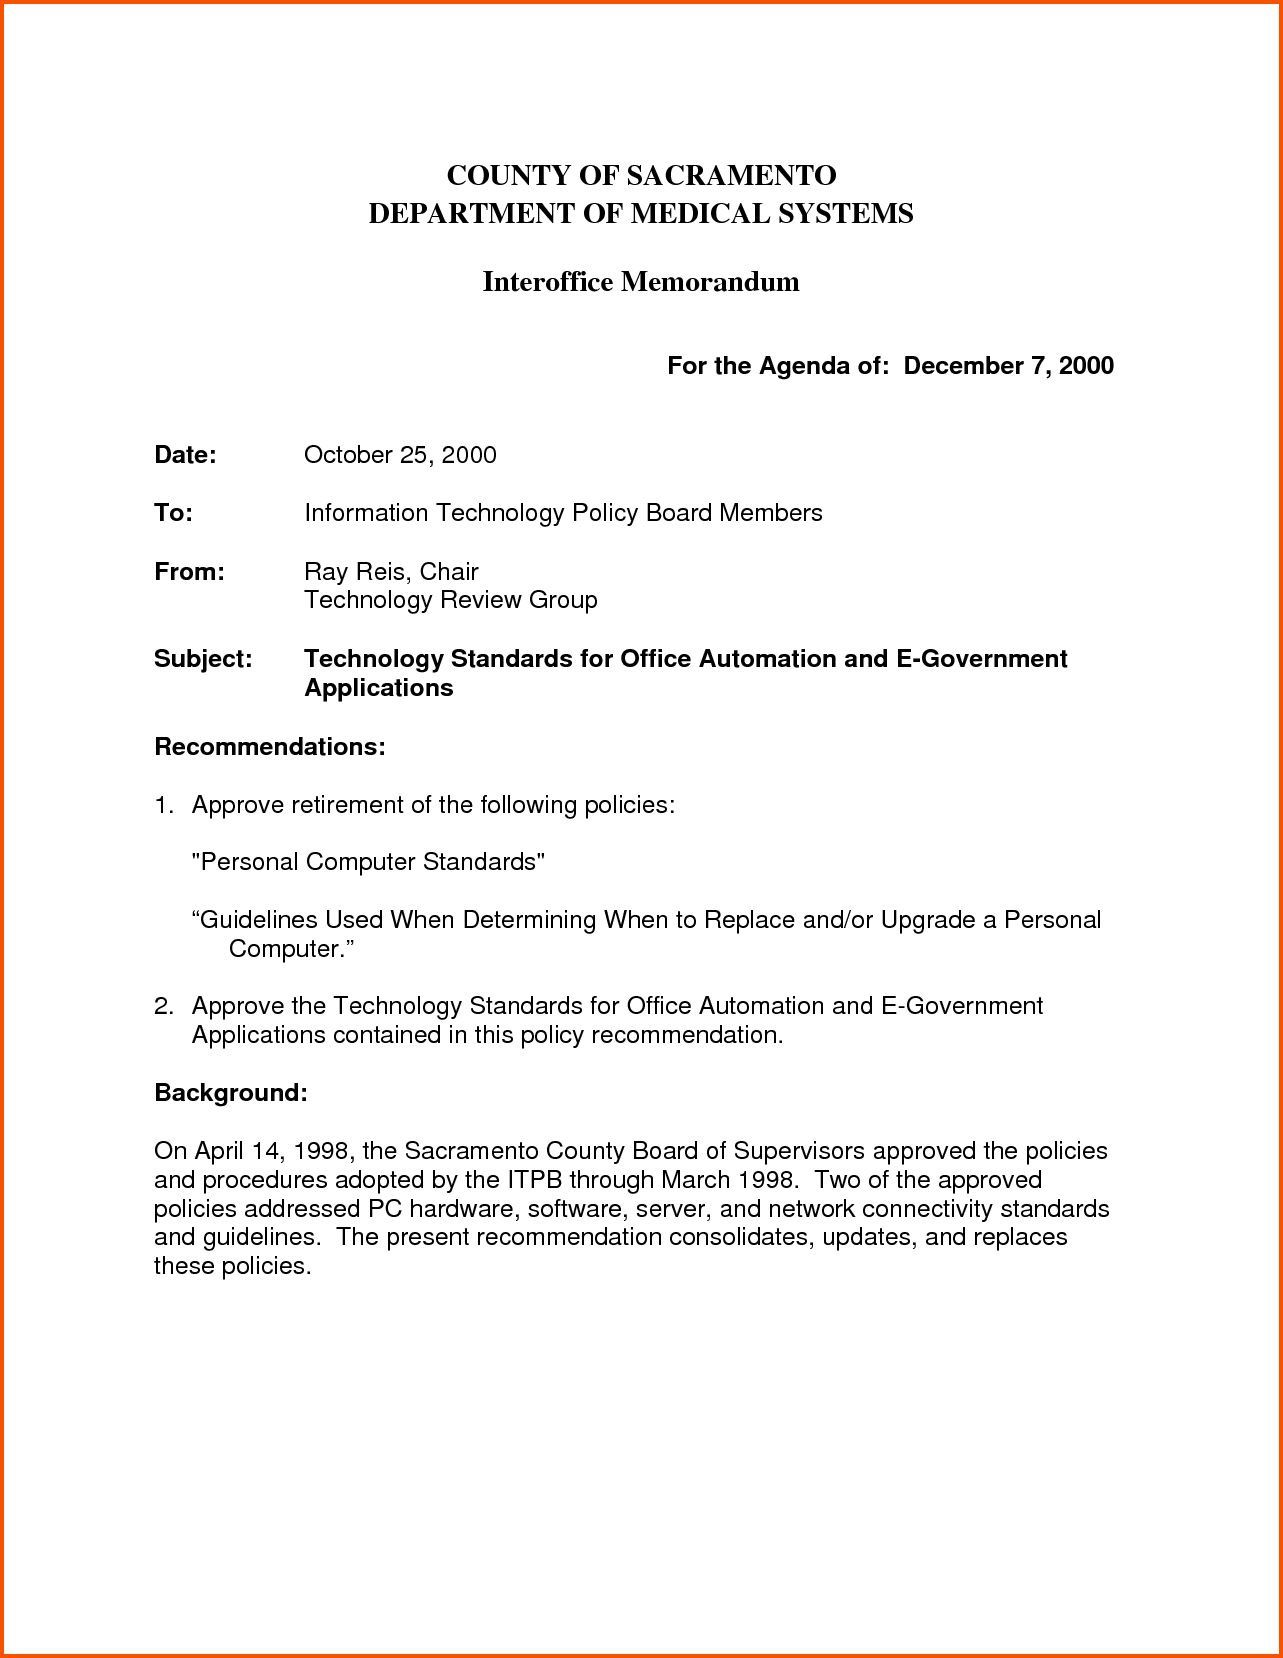 002 Top Memo Template For Word Picture  Free Cash Sample 2013Full